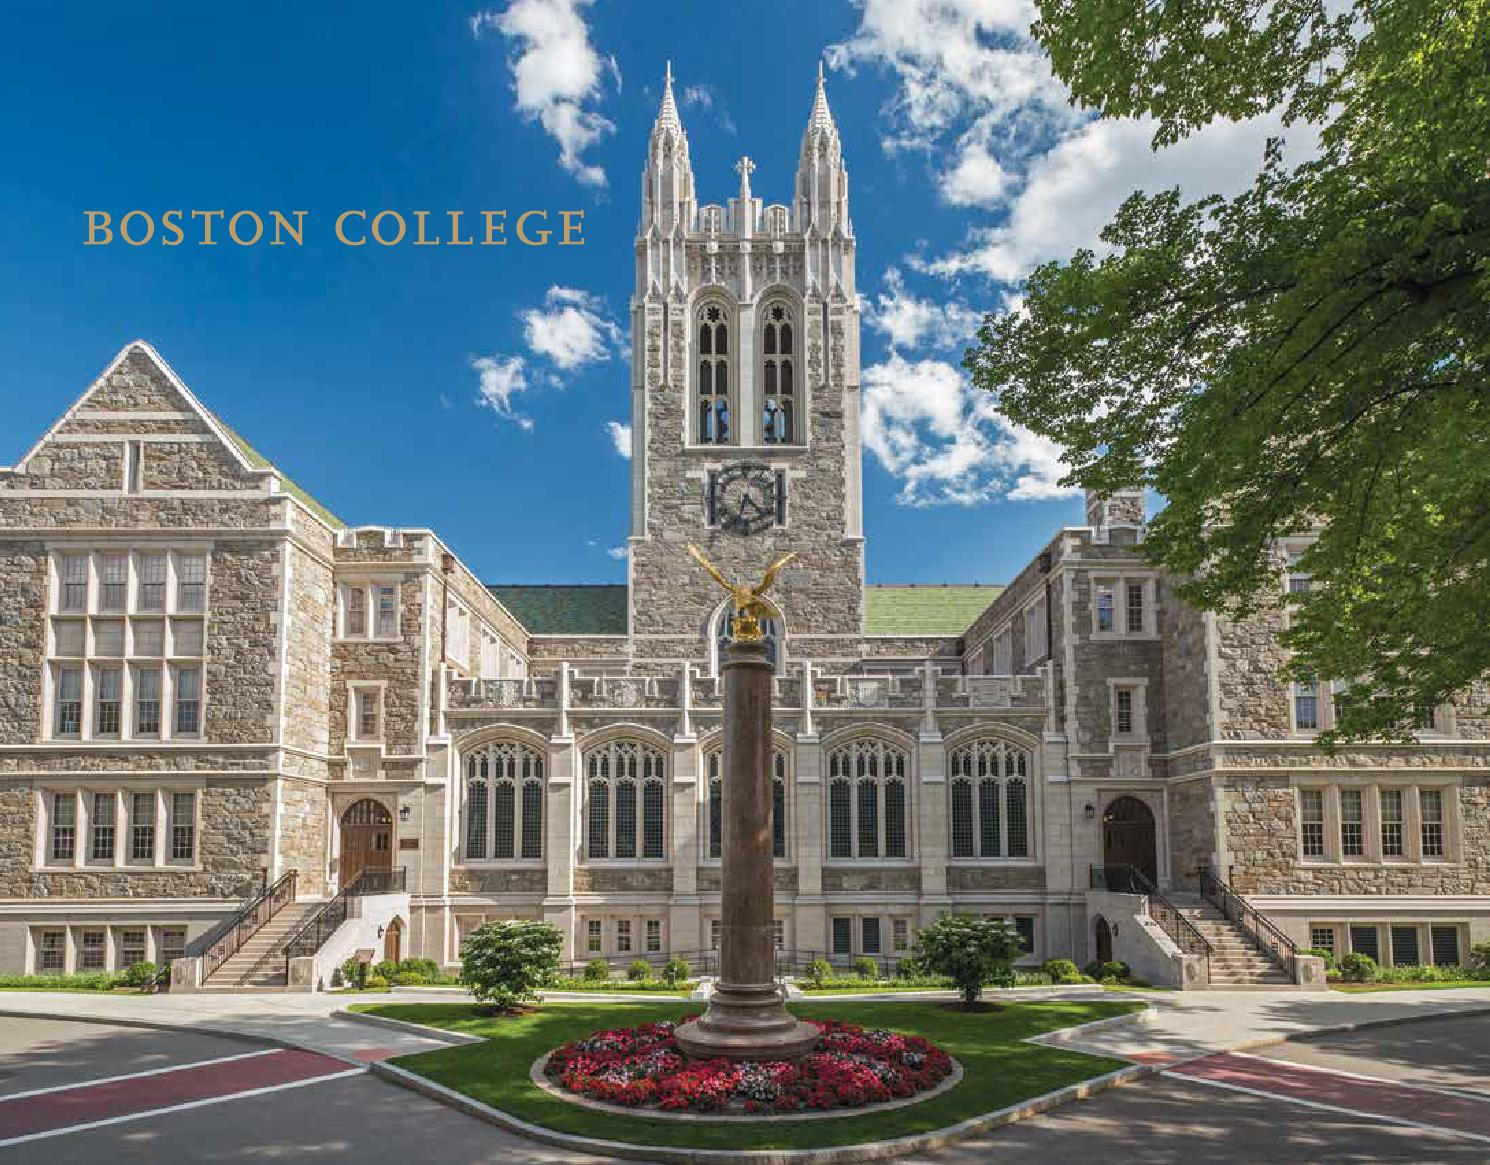 undergraduate college essays How to write a college admissions essay three parts: brainstorming ideas for your essay drafting your essay editing your essay community q&a your college admissions essay is one of the most important parts of your college application.